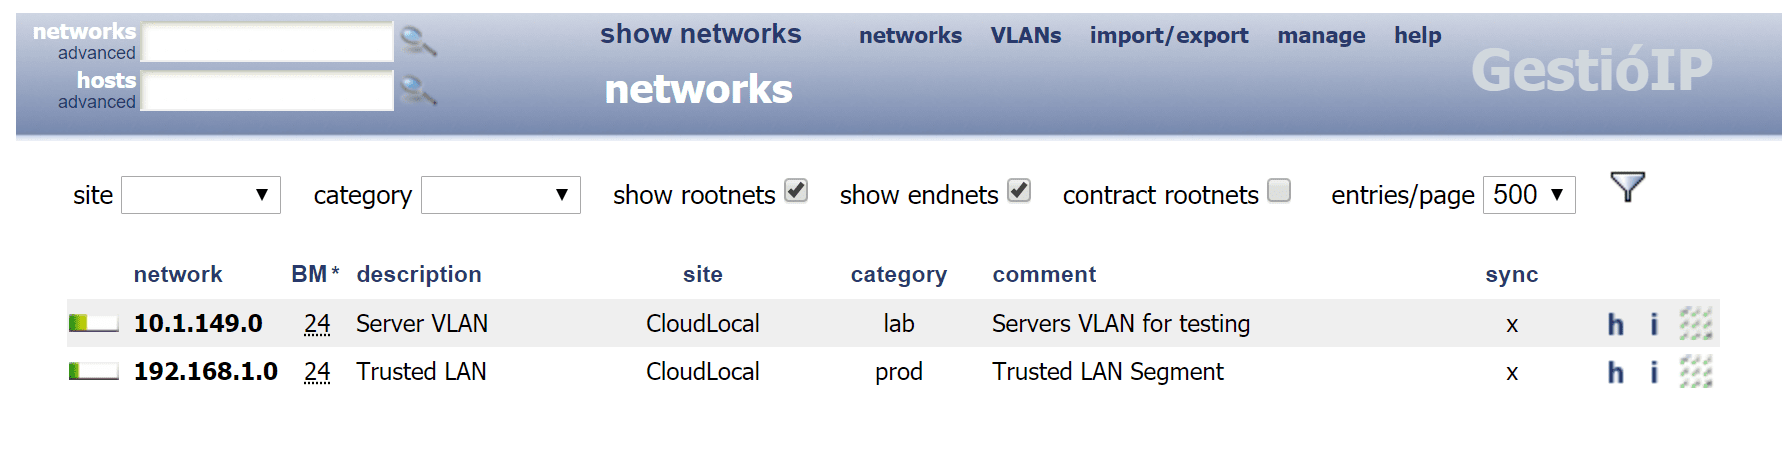 After-adding-a-couple-of-networks-to-Gestioip Keep Track of IP Addresses Automatically with GestioIP